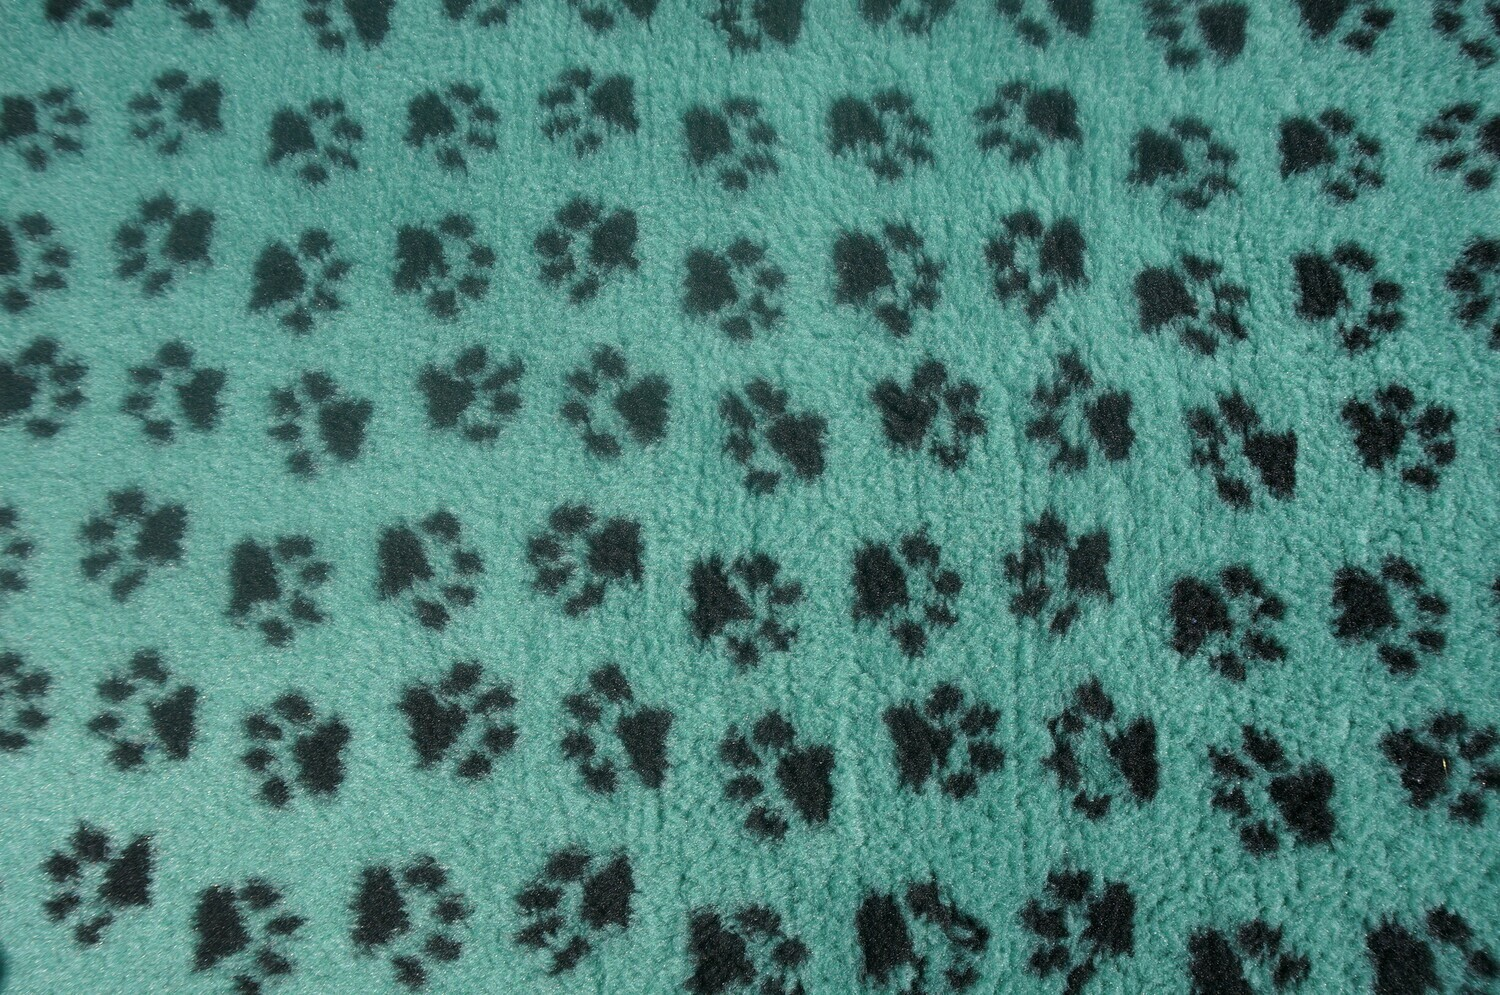 {Single Sheets} : Ultra Premium - Non-Slip Backing : Sage Green with Black Paws  - Ref : (6352)